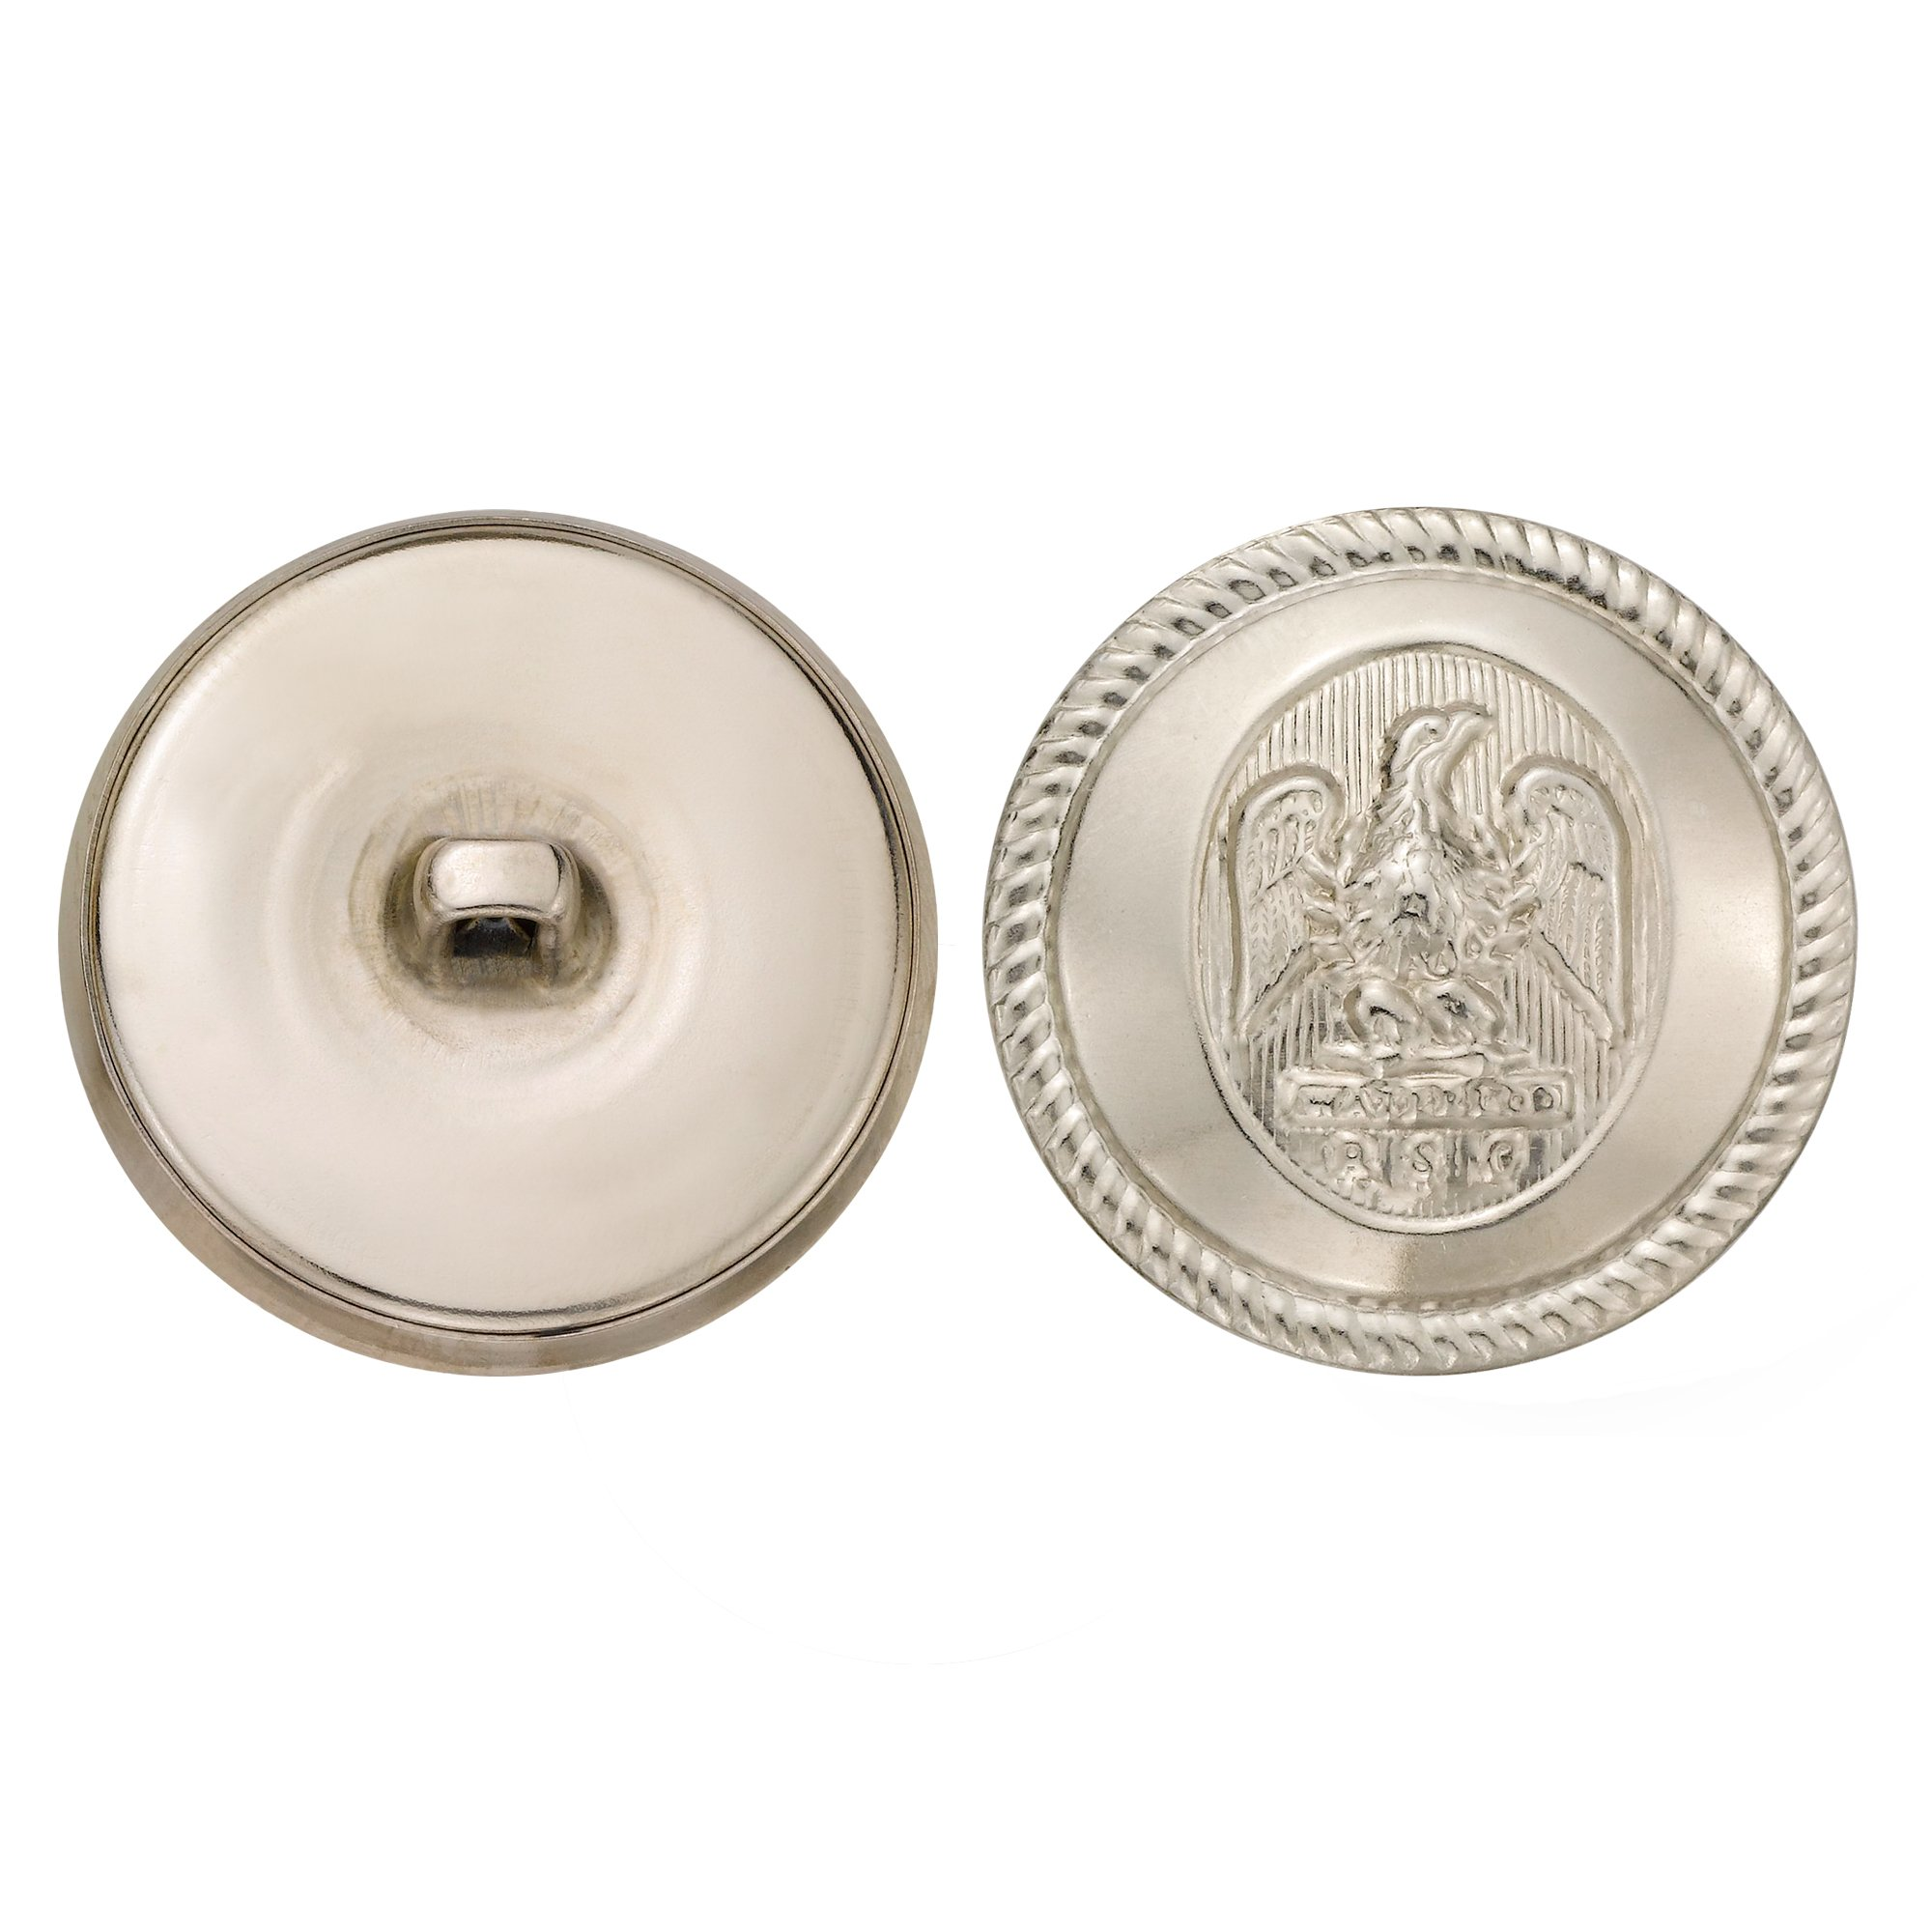 C&C Metal Products 5064 Rope Rim Usa Eagle Metal Button, Size 45 Ligne, Nickel, 36-Pack